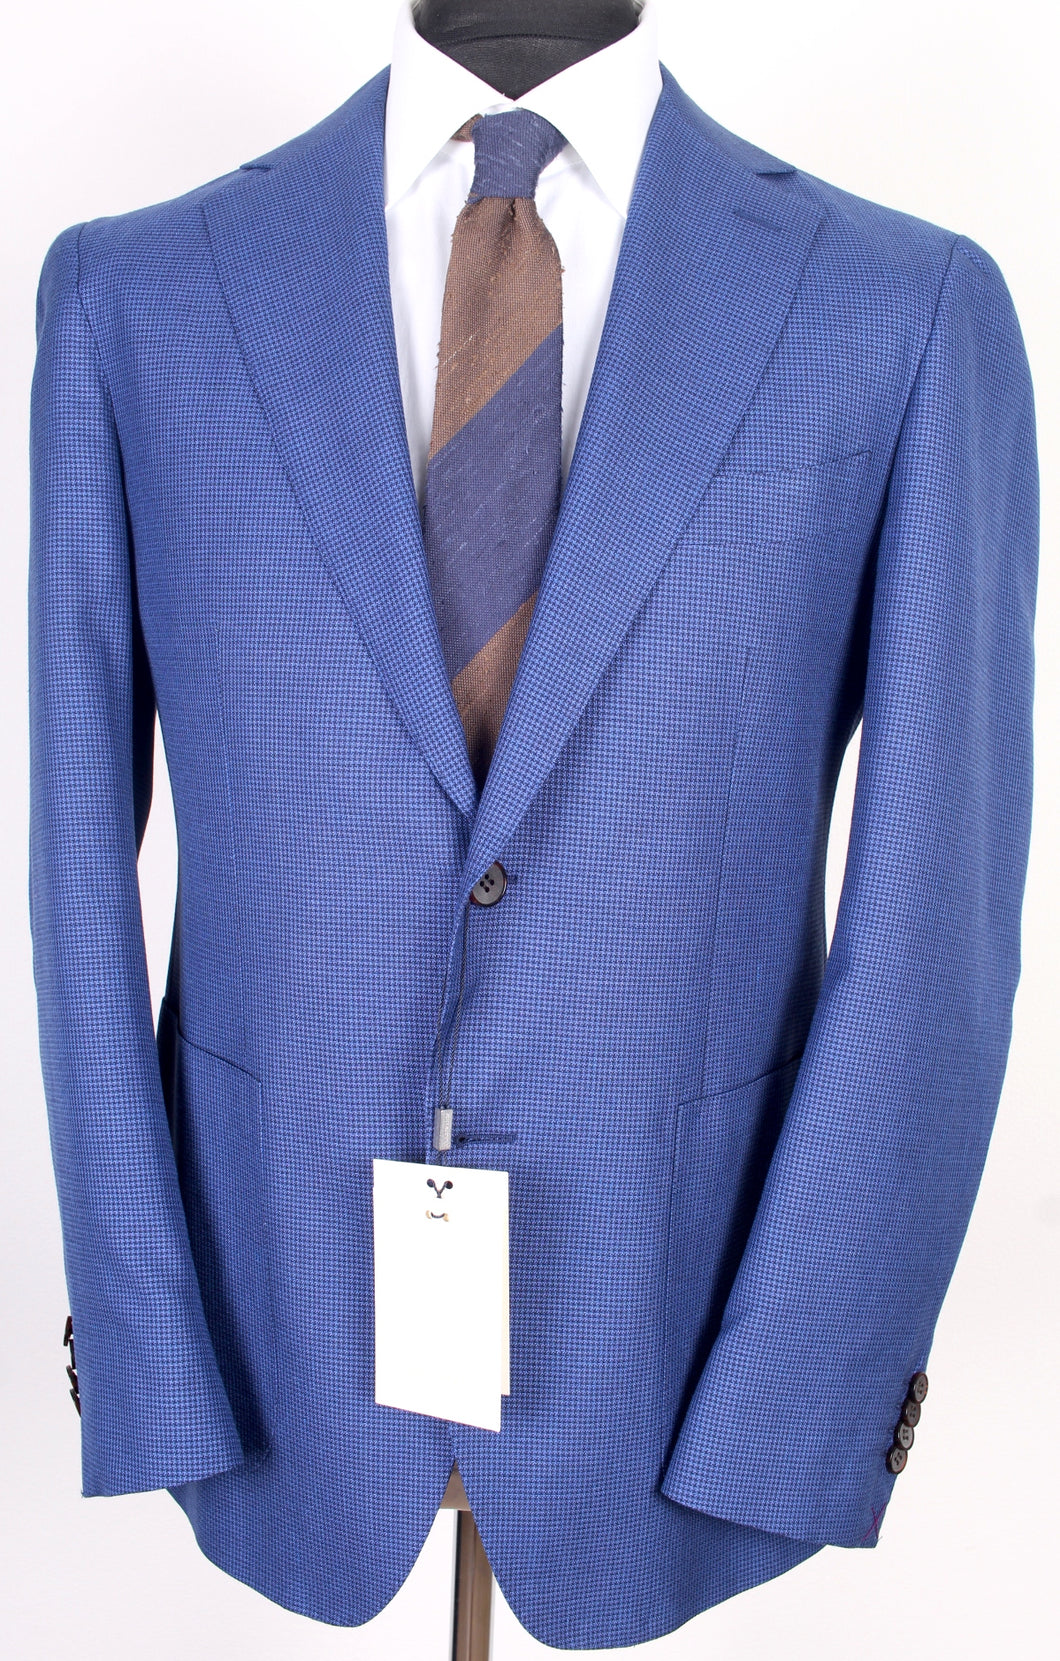 New Suitsupply Havana Blue Houndstooth Birdseye Wool, Silk and Linen Blazer - Size 42S